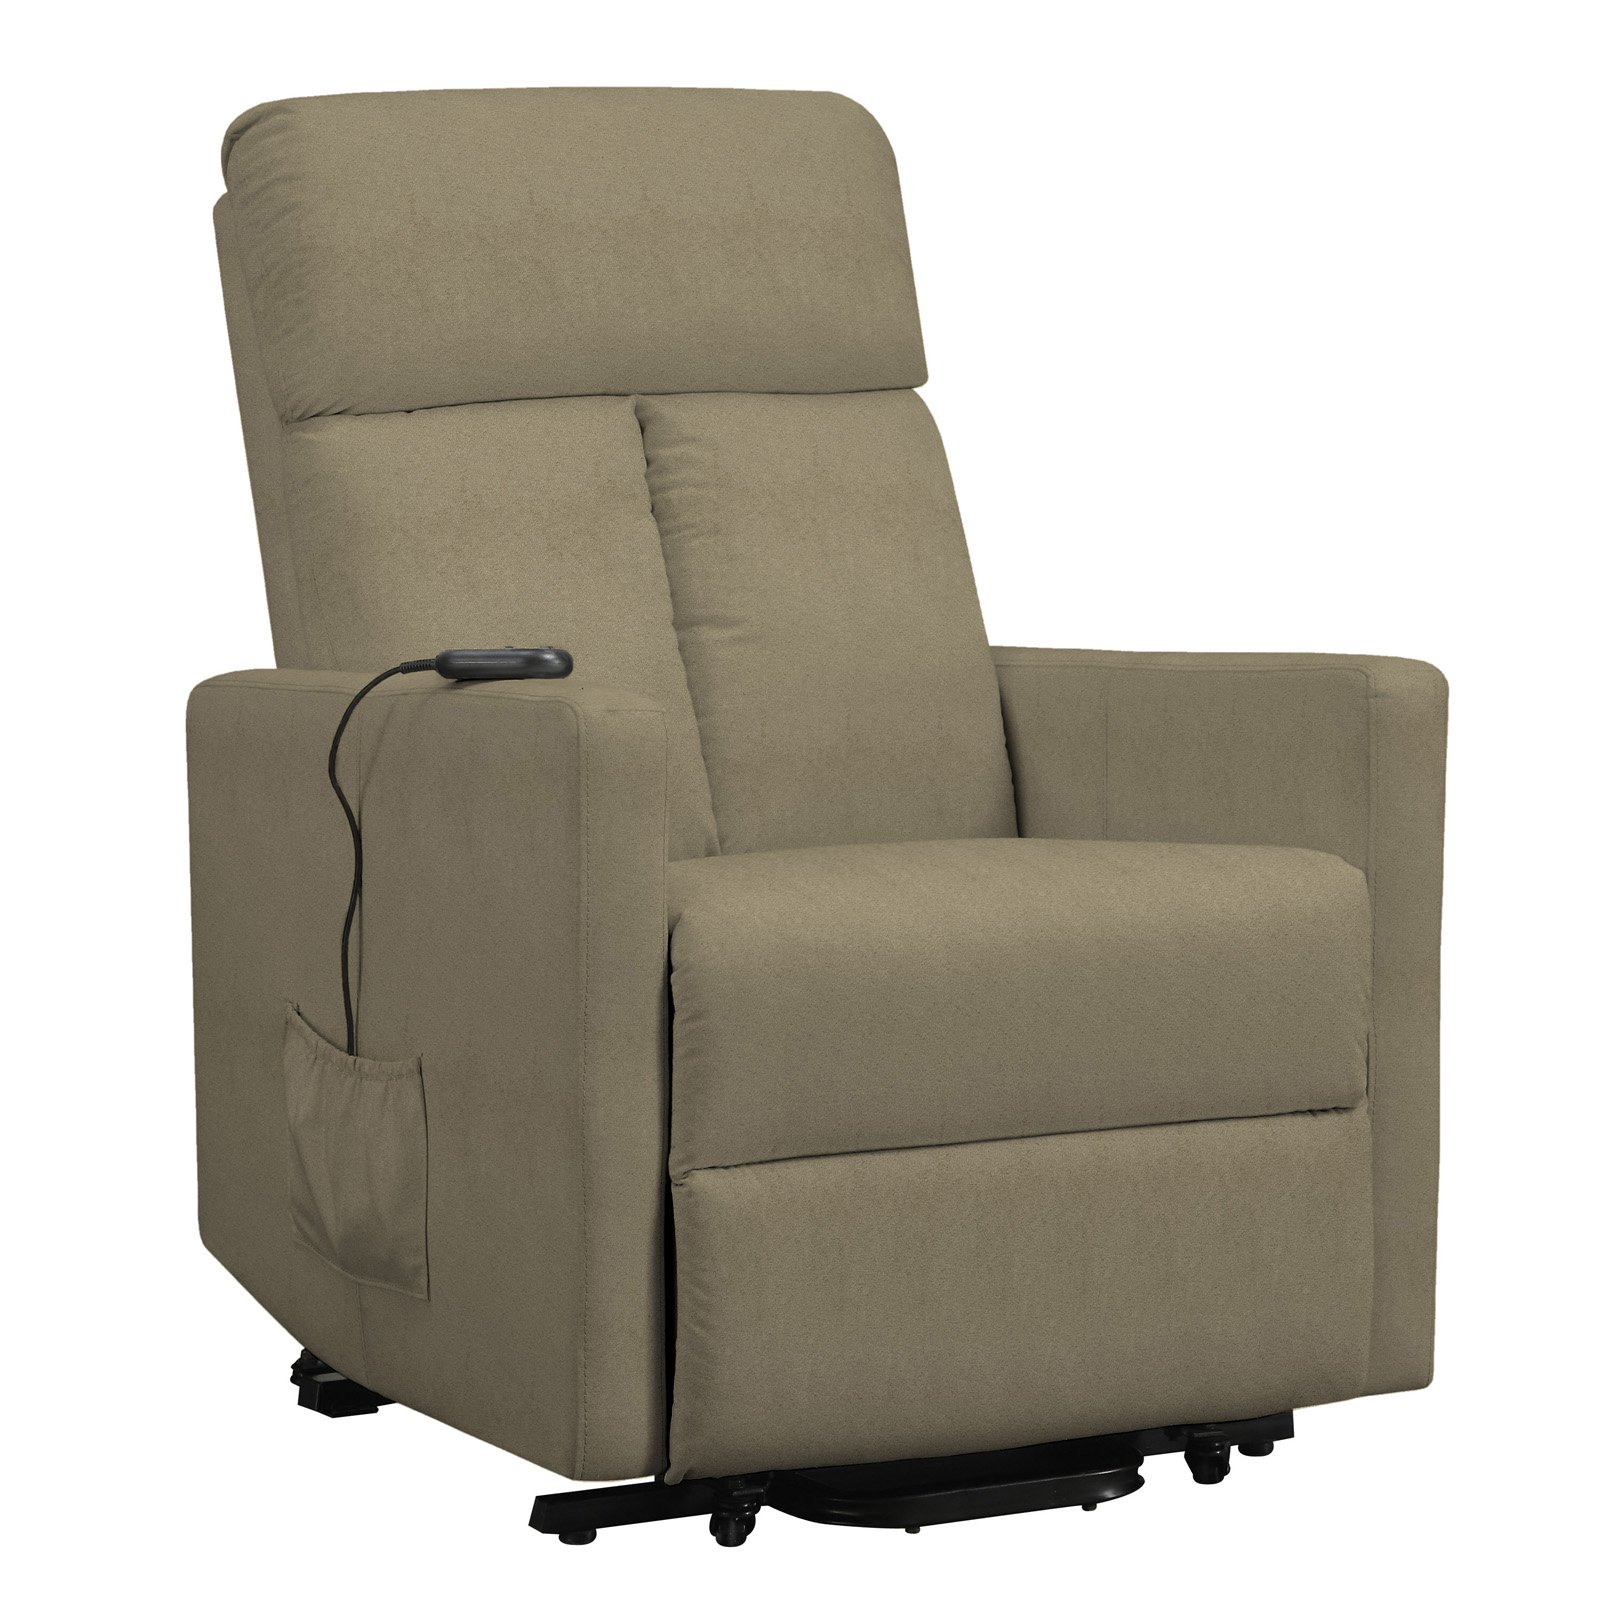 ProLounger Power Lift Chair Microfiber Recliner, T-Back, Multiple Colors by Handy Living